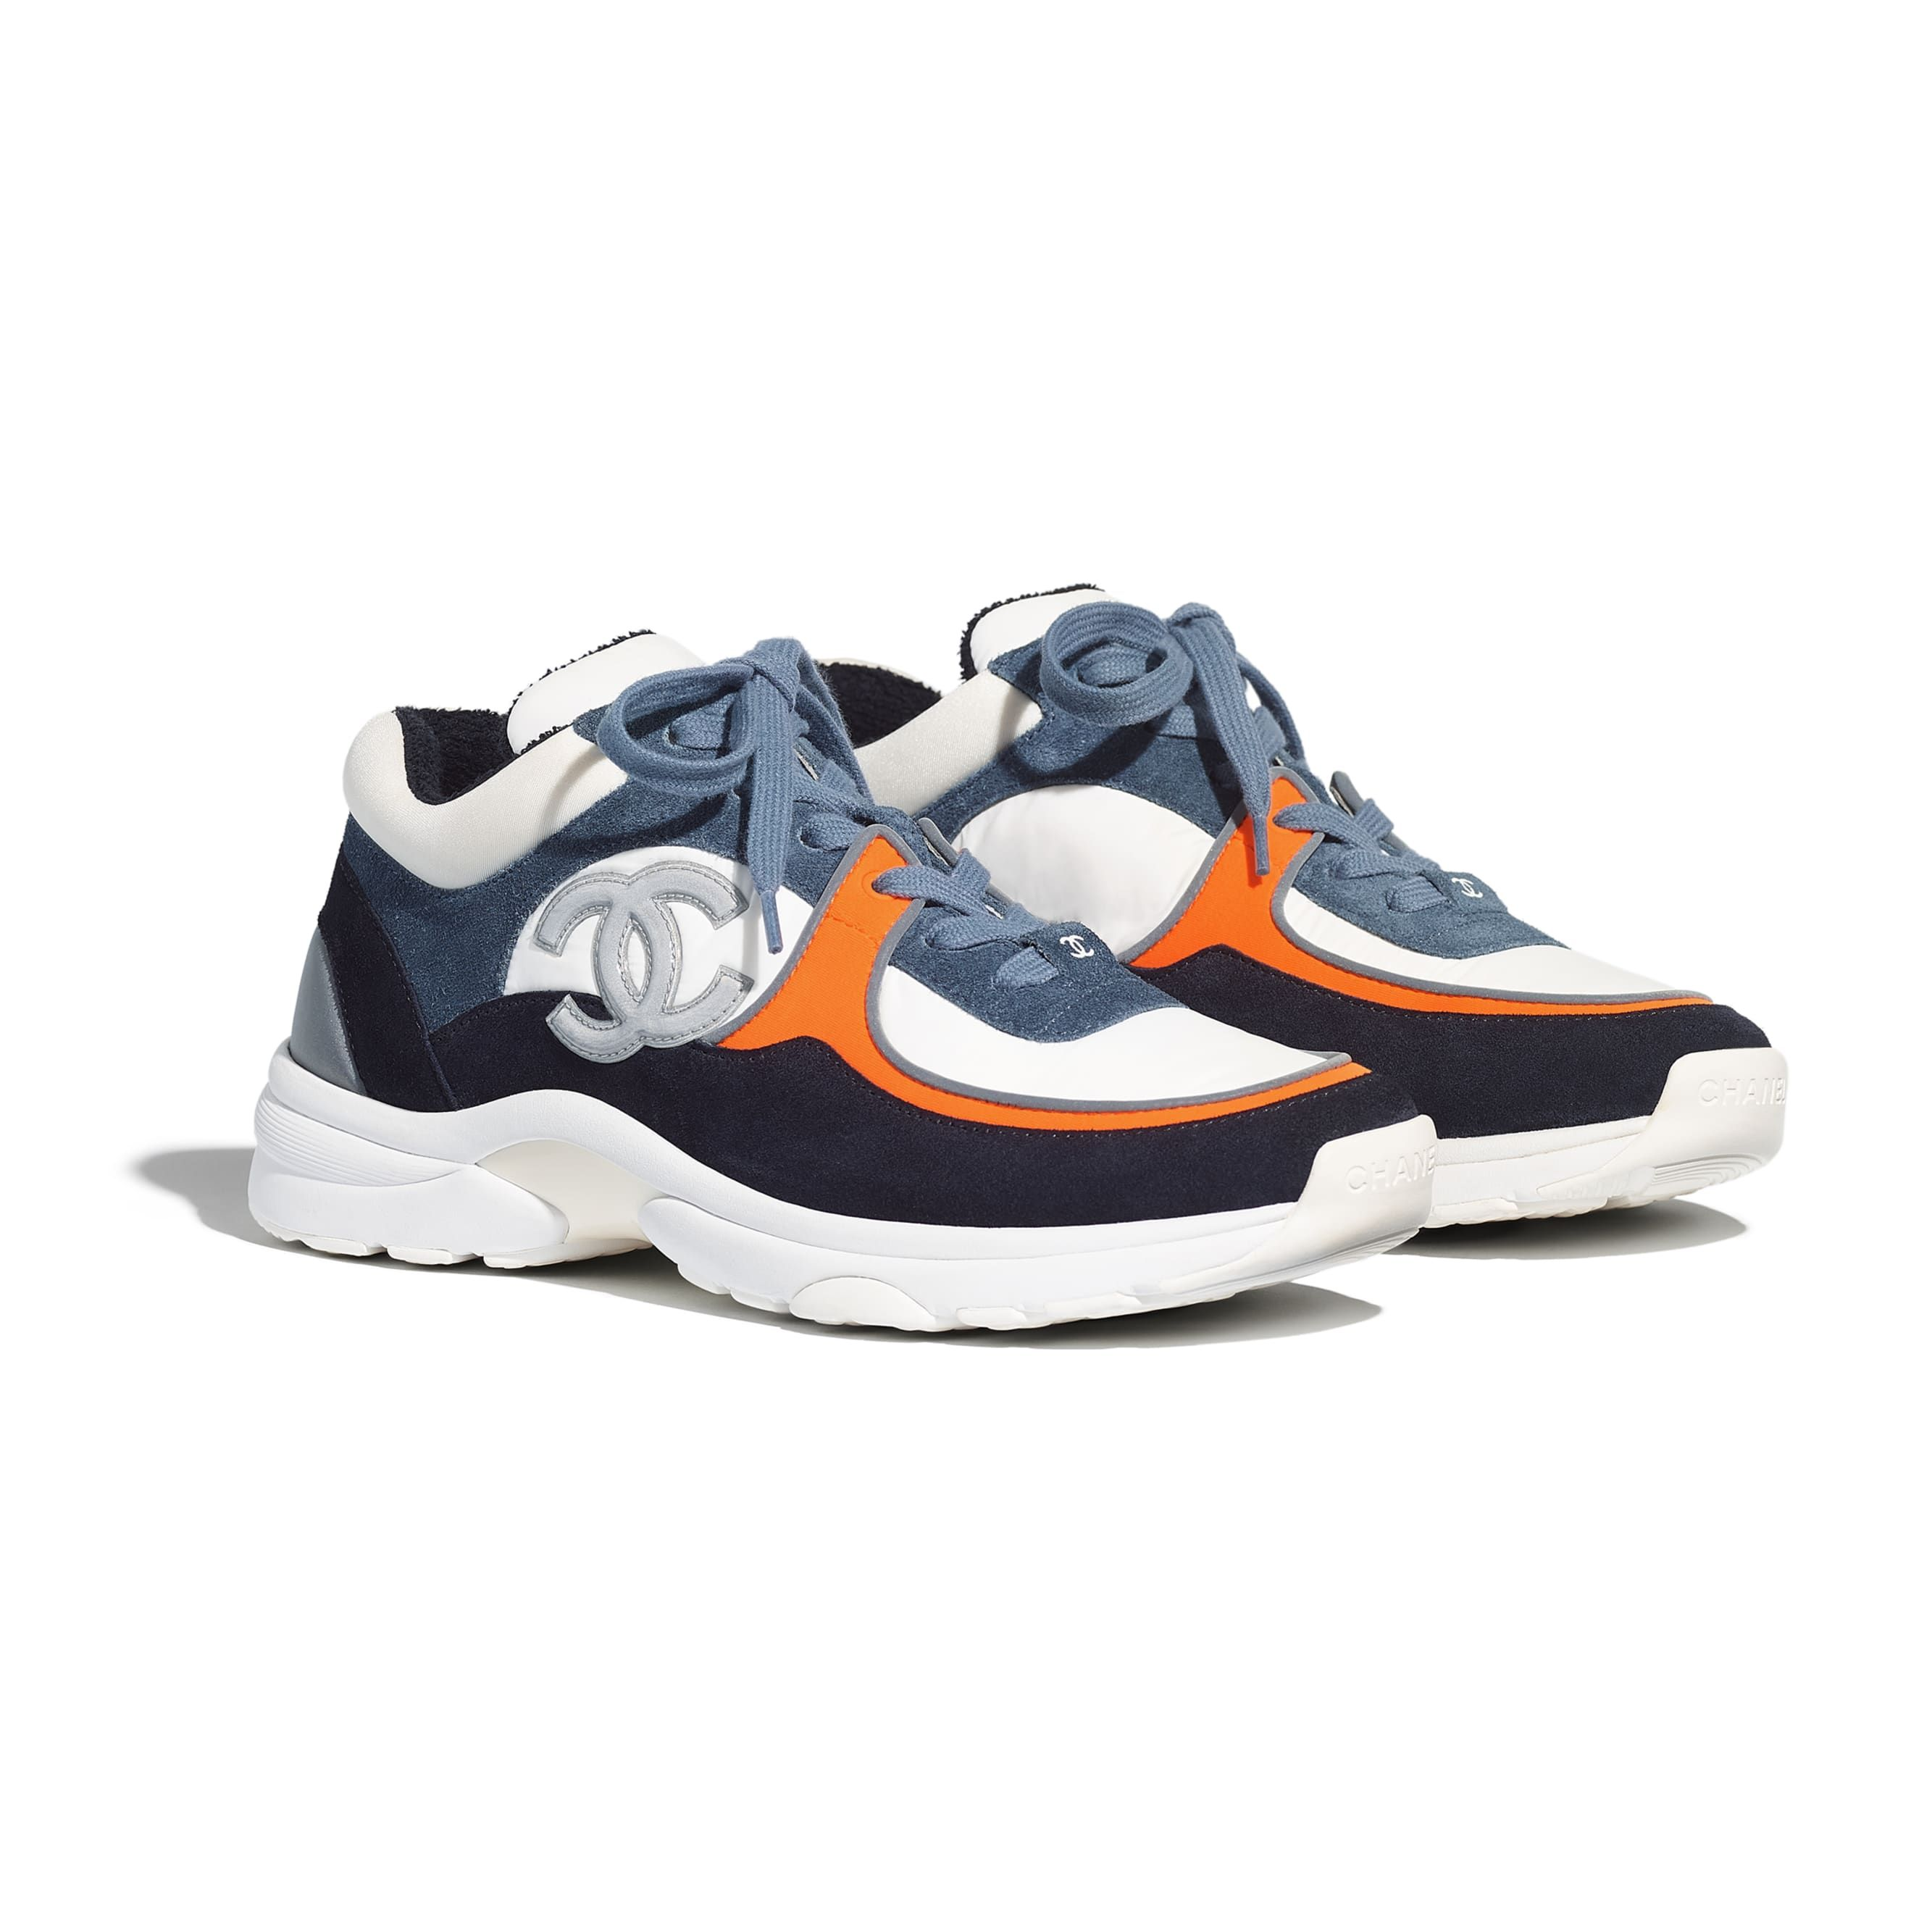 orange and blue gym shoes